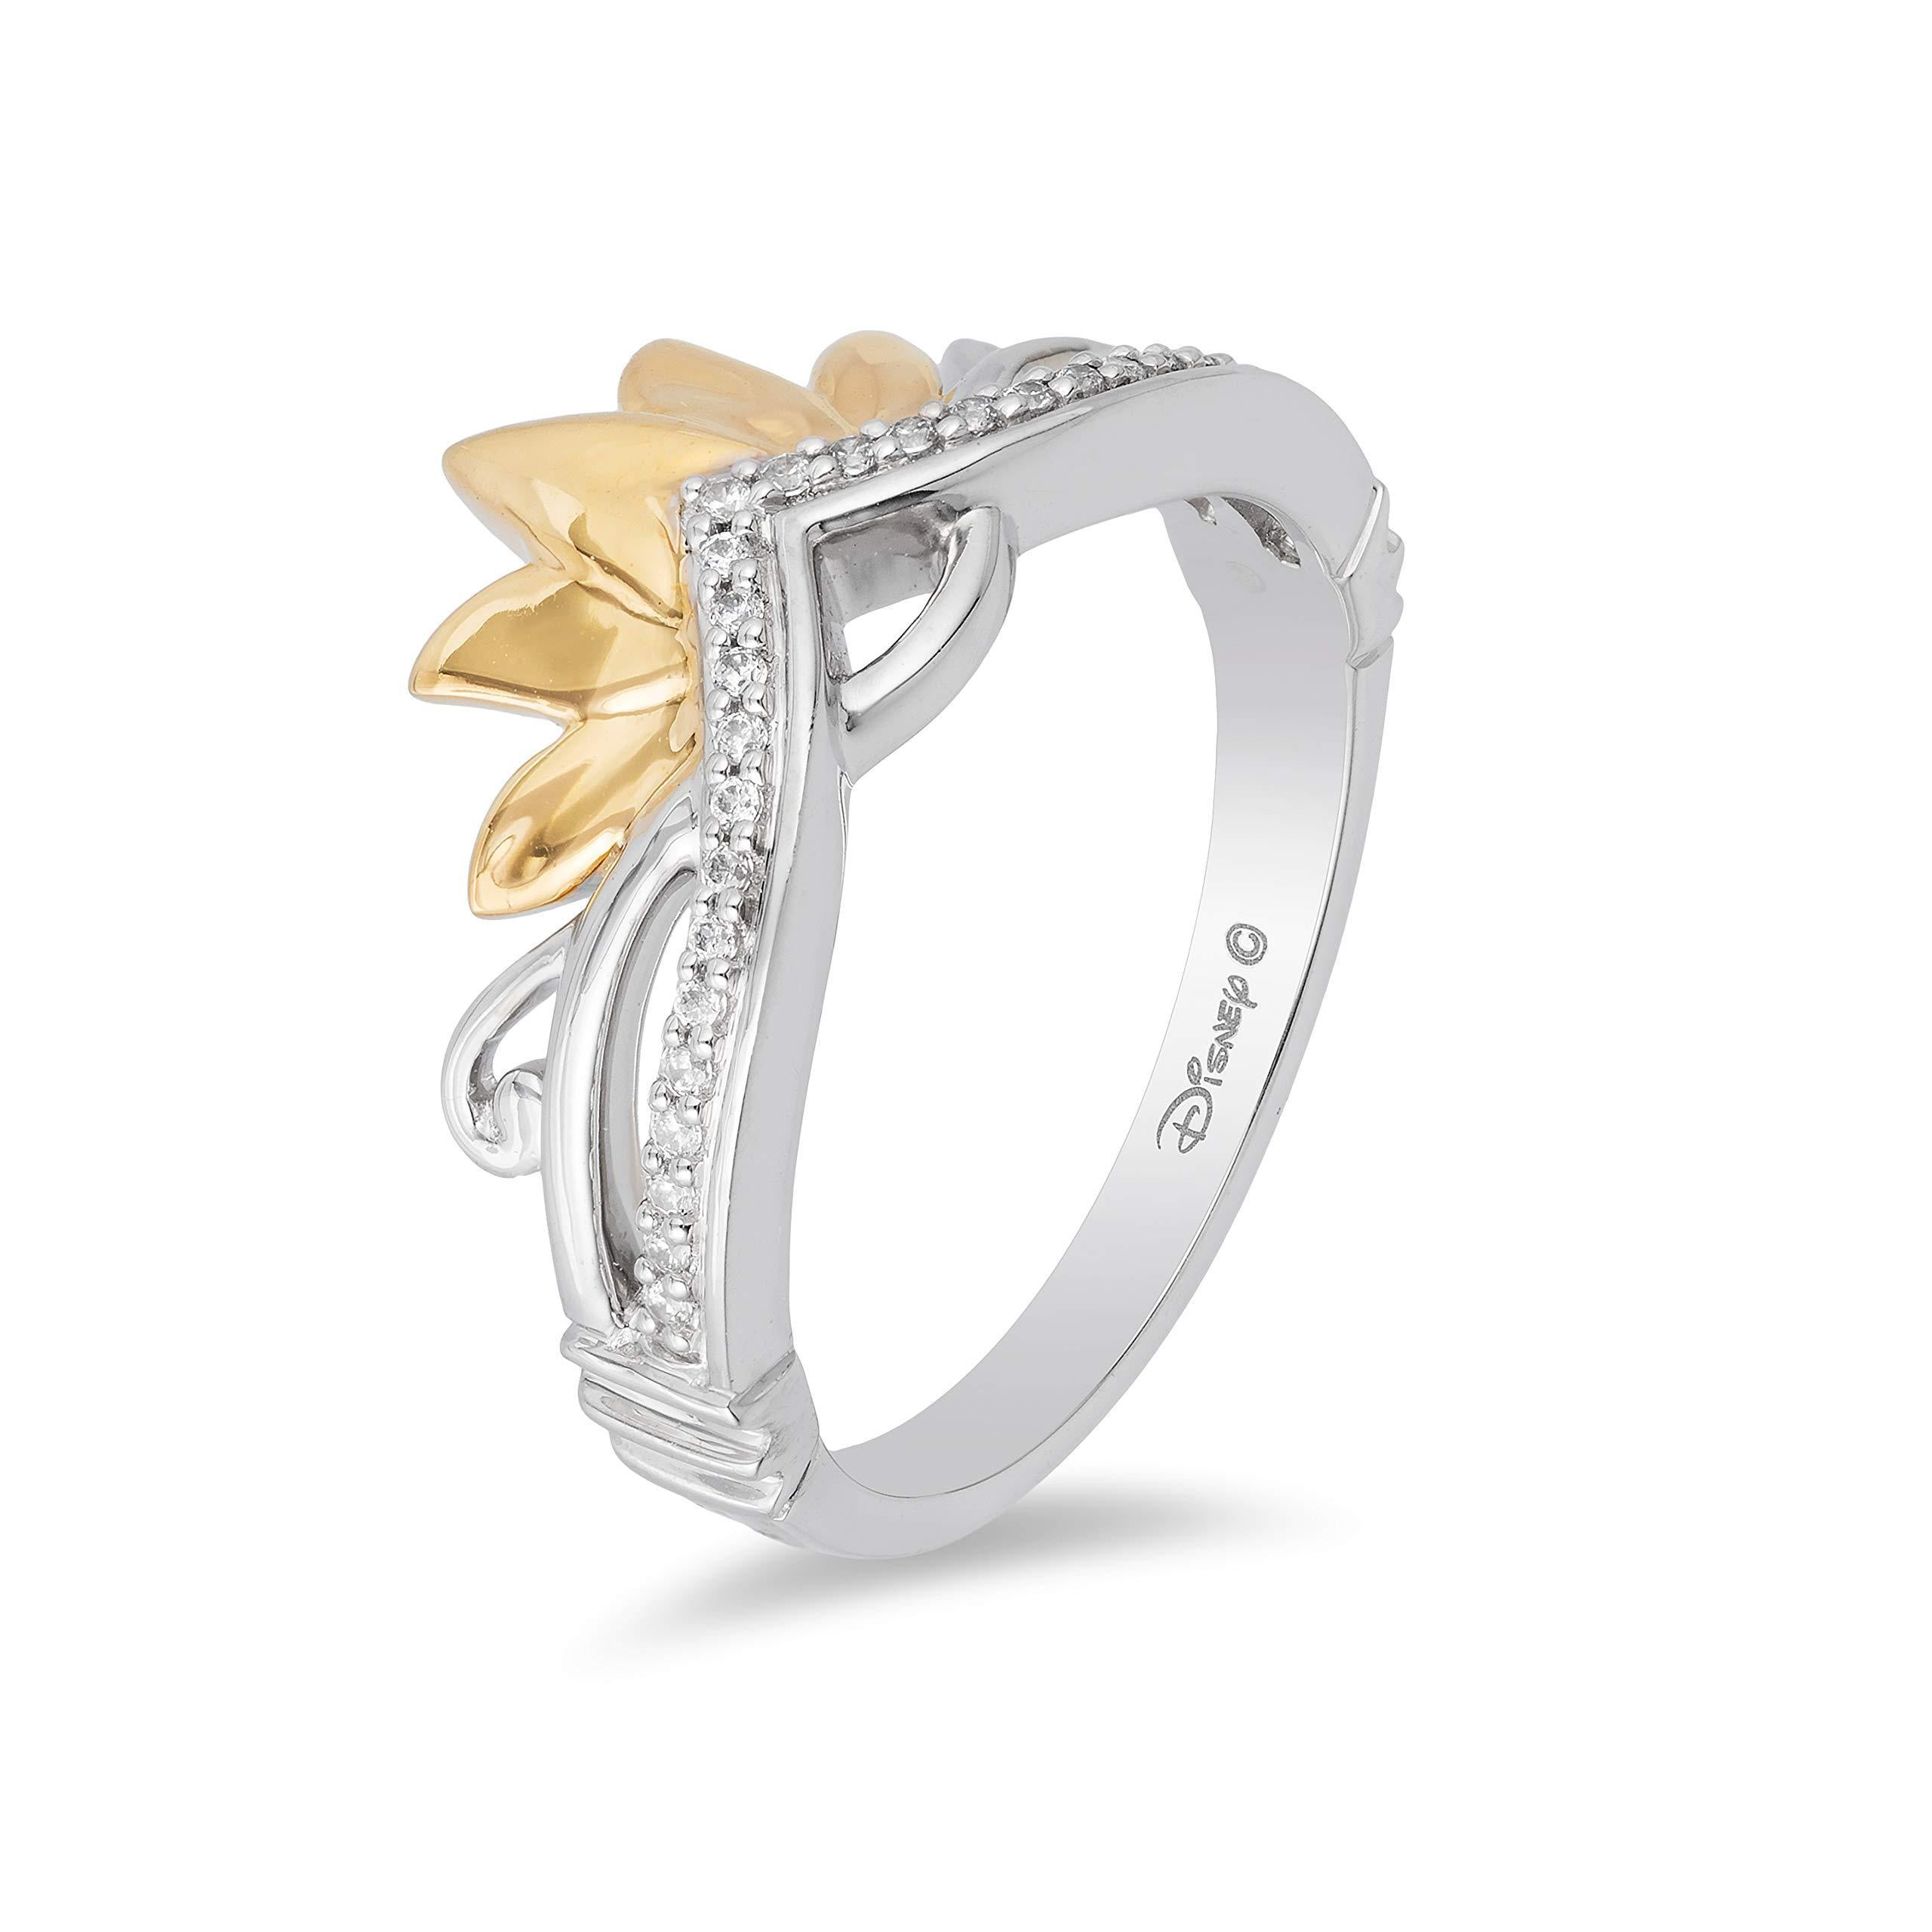 enchanted_disney-tiana_tiara_ring-9k_yellow_gold_and_sterling_silver_0.10CTTW_1